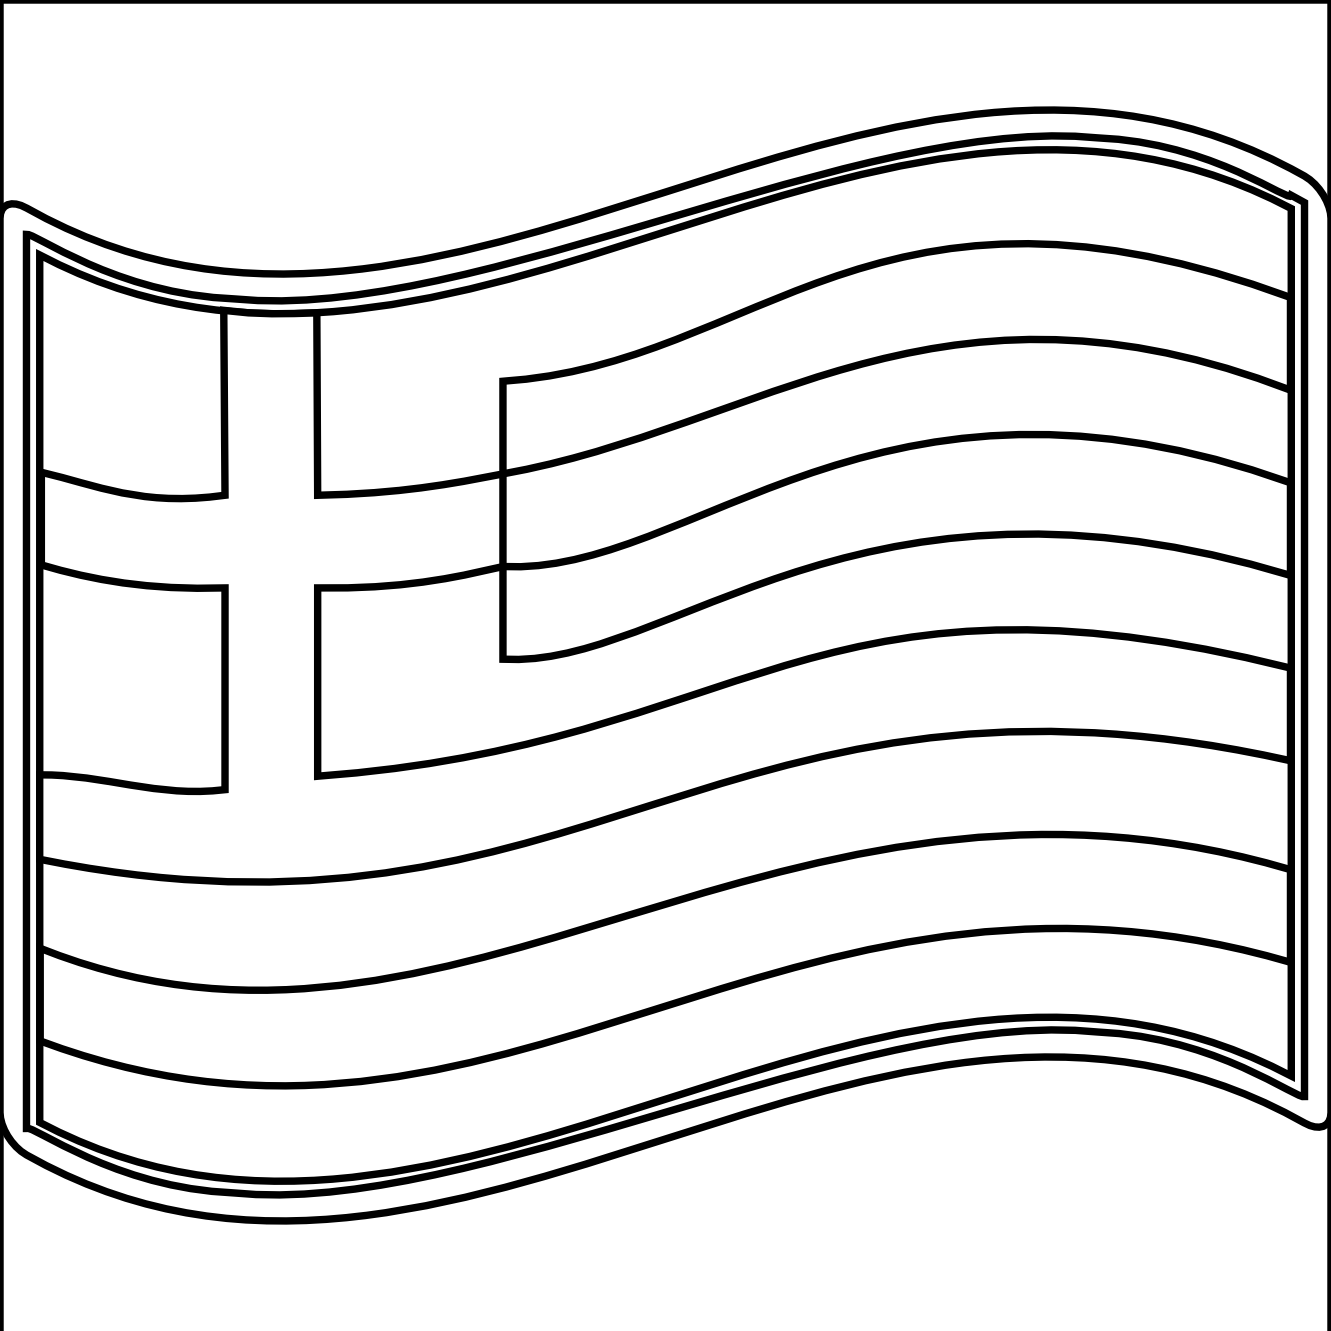 coloring pages for greek flags - photo#8